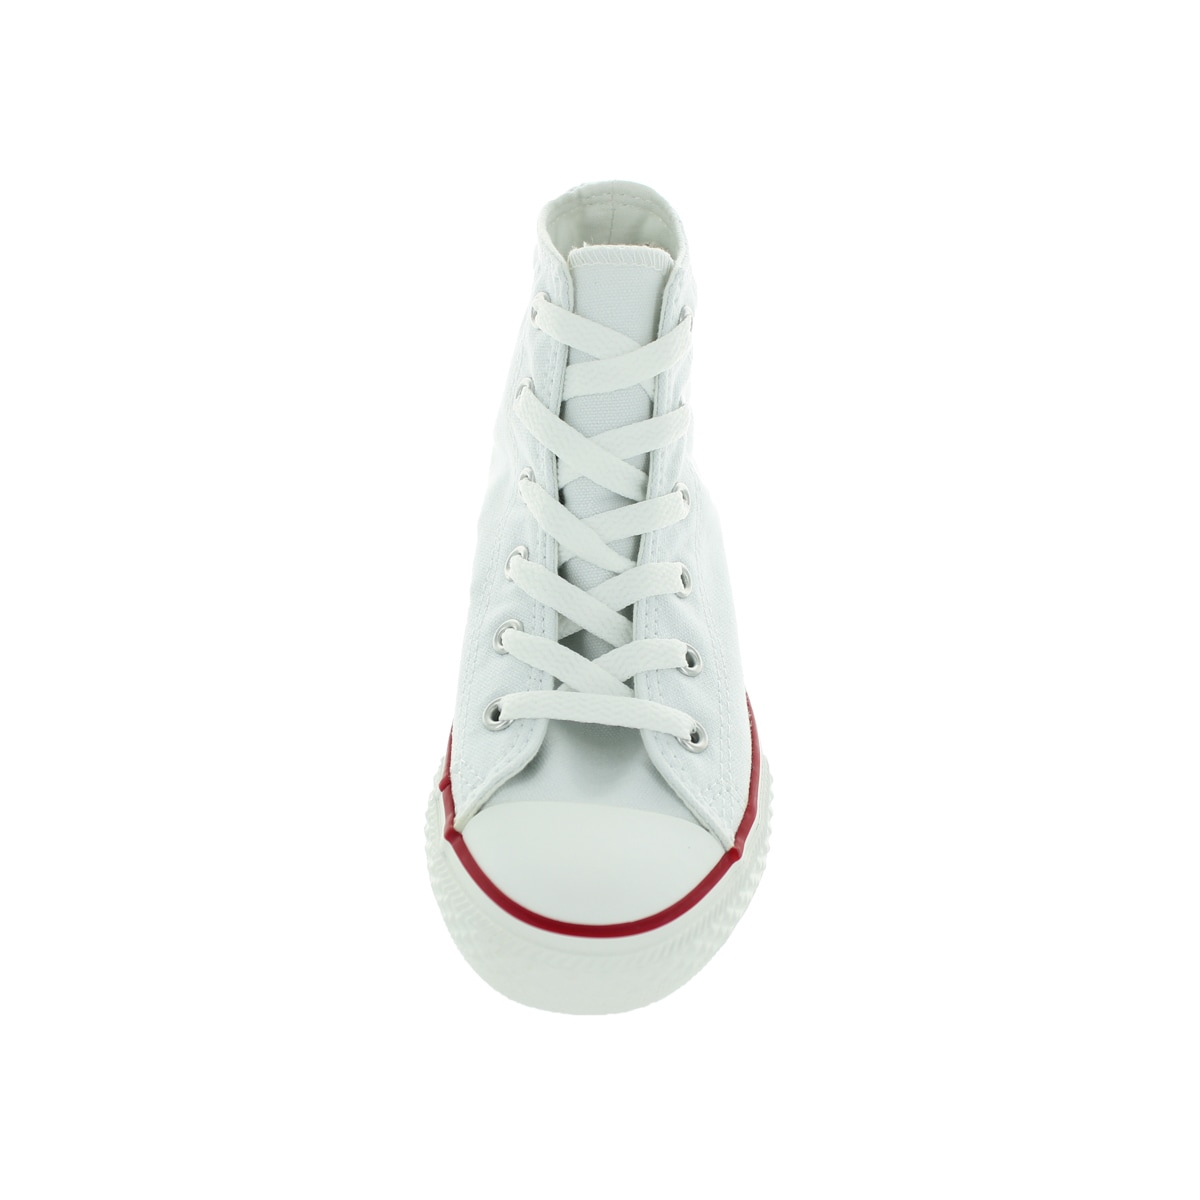 8a673a93ed7 Shop Converse Kid s Chuck Taylor All Star Hi Core Opt Optical White  Basketball Shoe - Free Shipping On Orders Over  45 - Overstock.com -  12321477